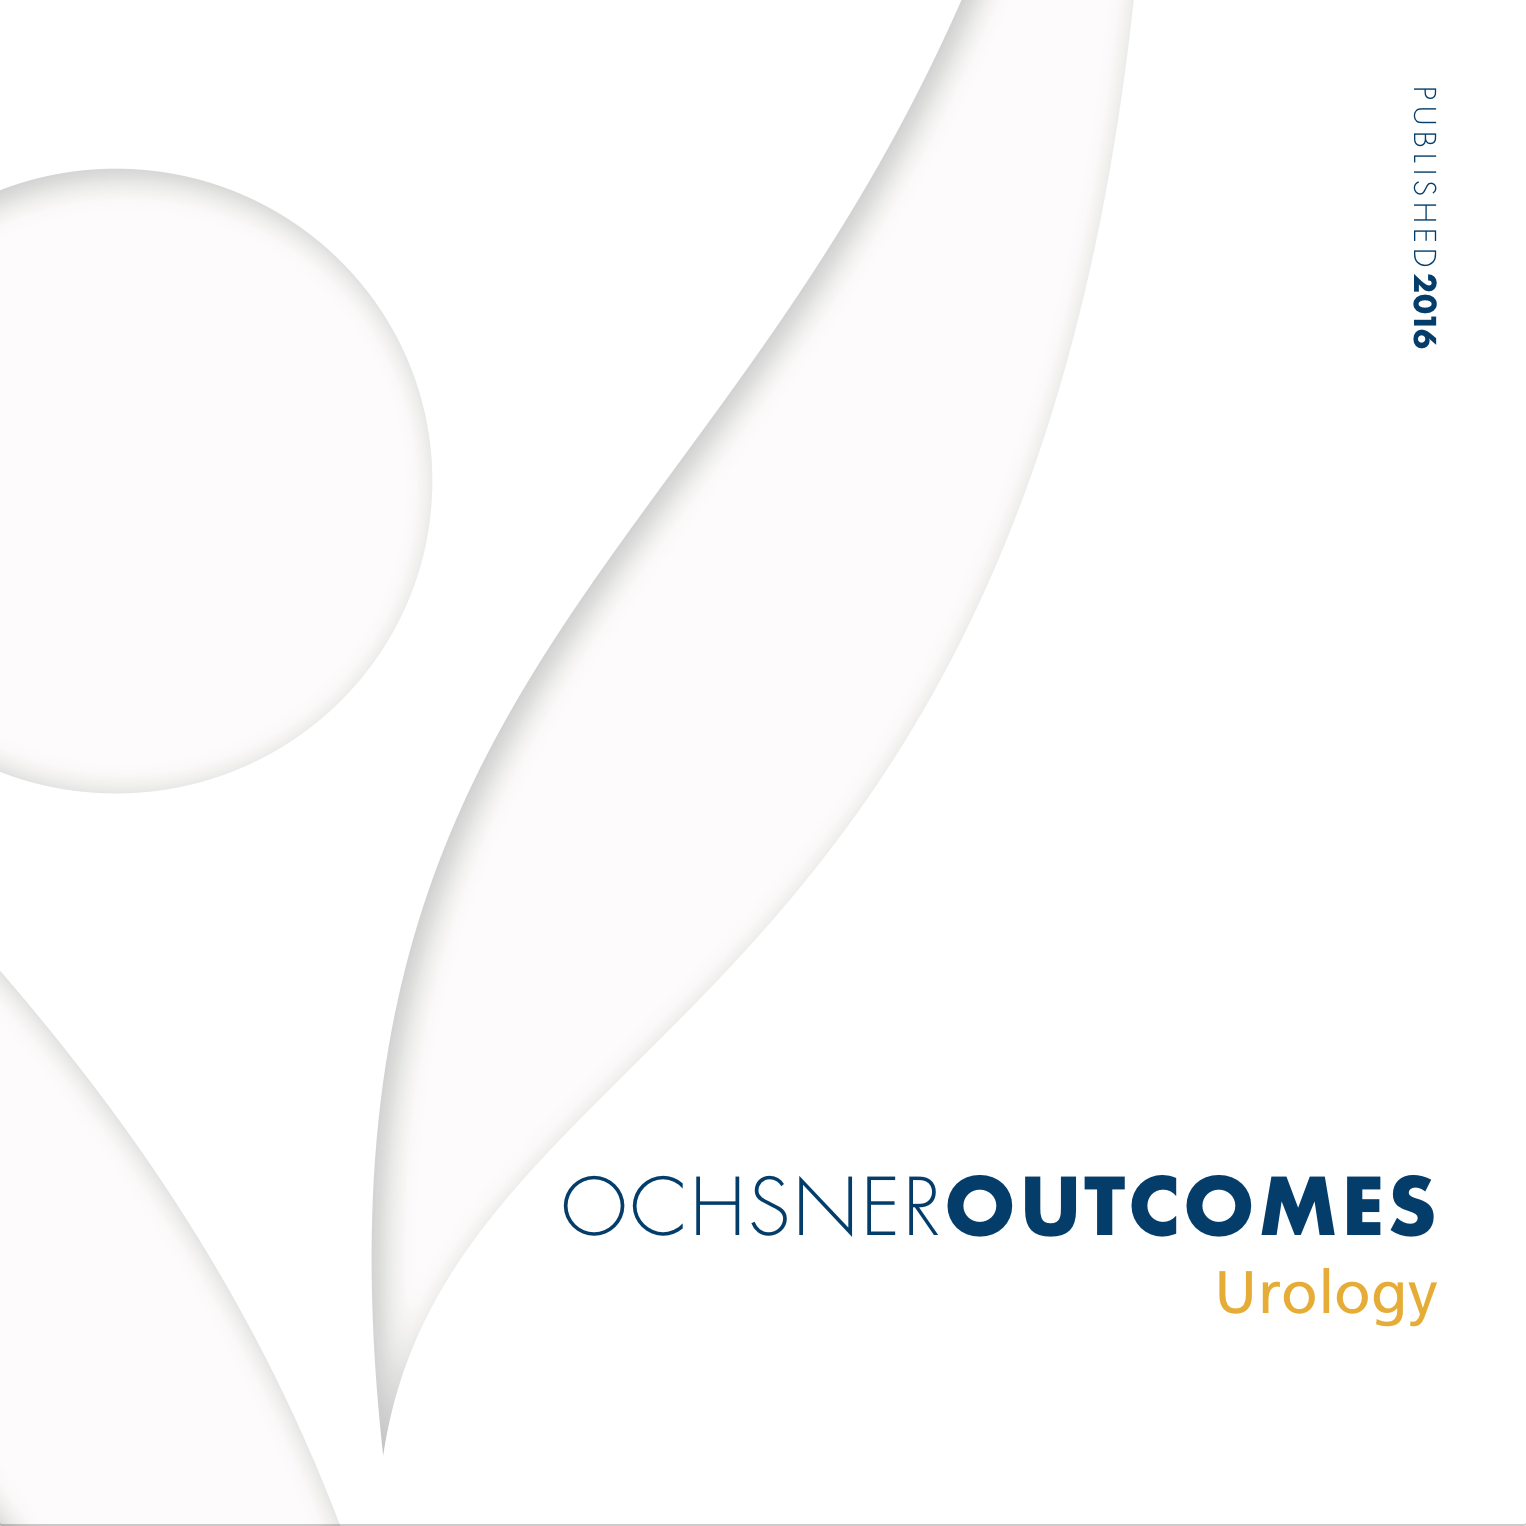 Ochsner Outcomes - Urology